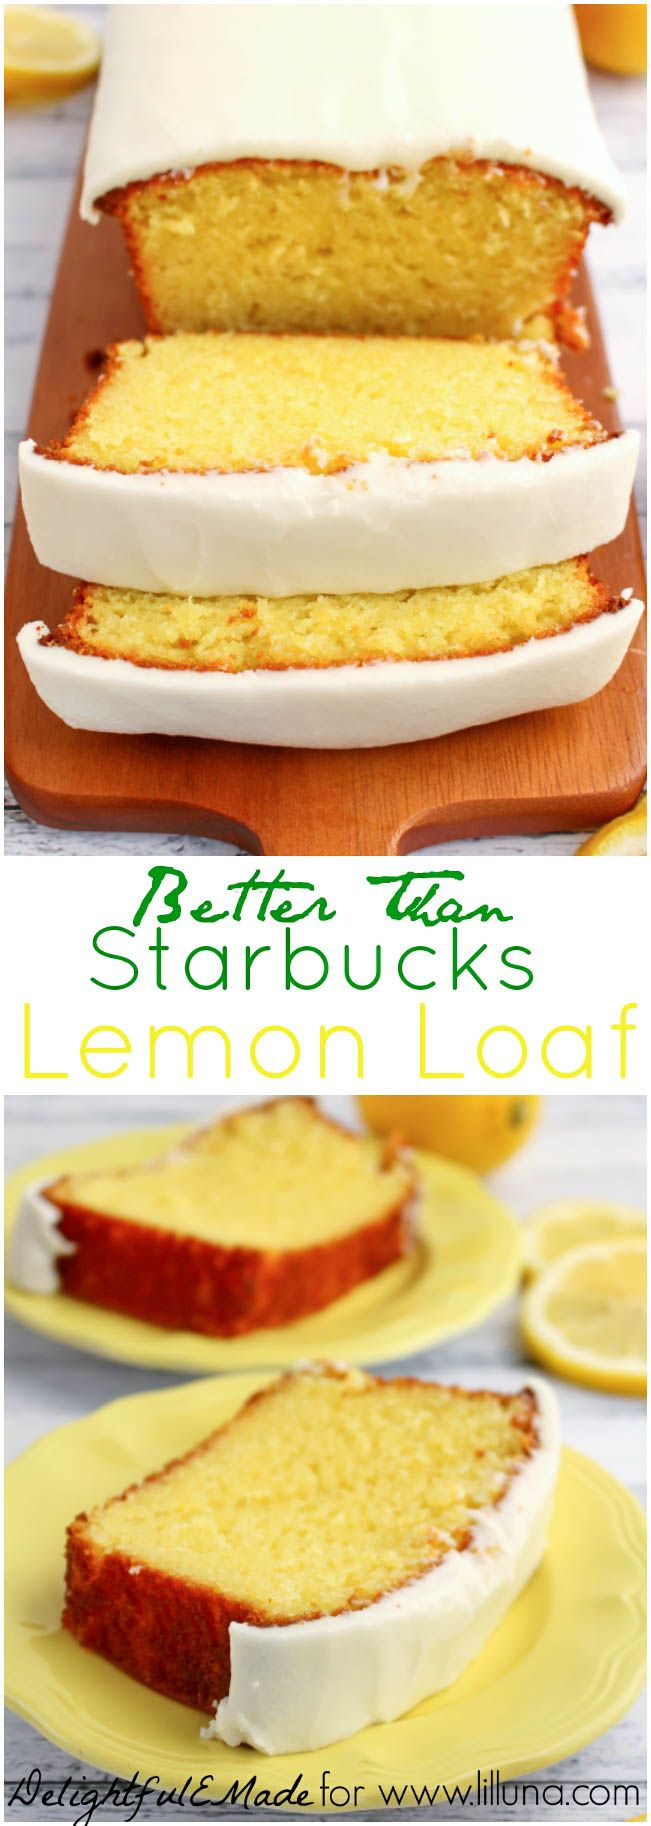 substitutet oil with zucchini and jogurt!! If you like Starbucks Lemon Loaf, then you'll love this moist, delicious Lemon cake!  This easy to make recipe, is loaded with delicious lemon flavor, and topped with an amazing lemon frosting.